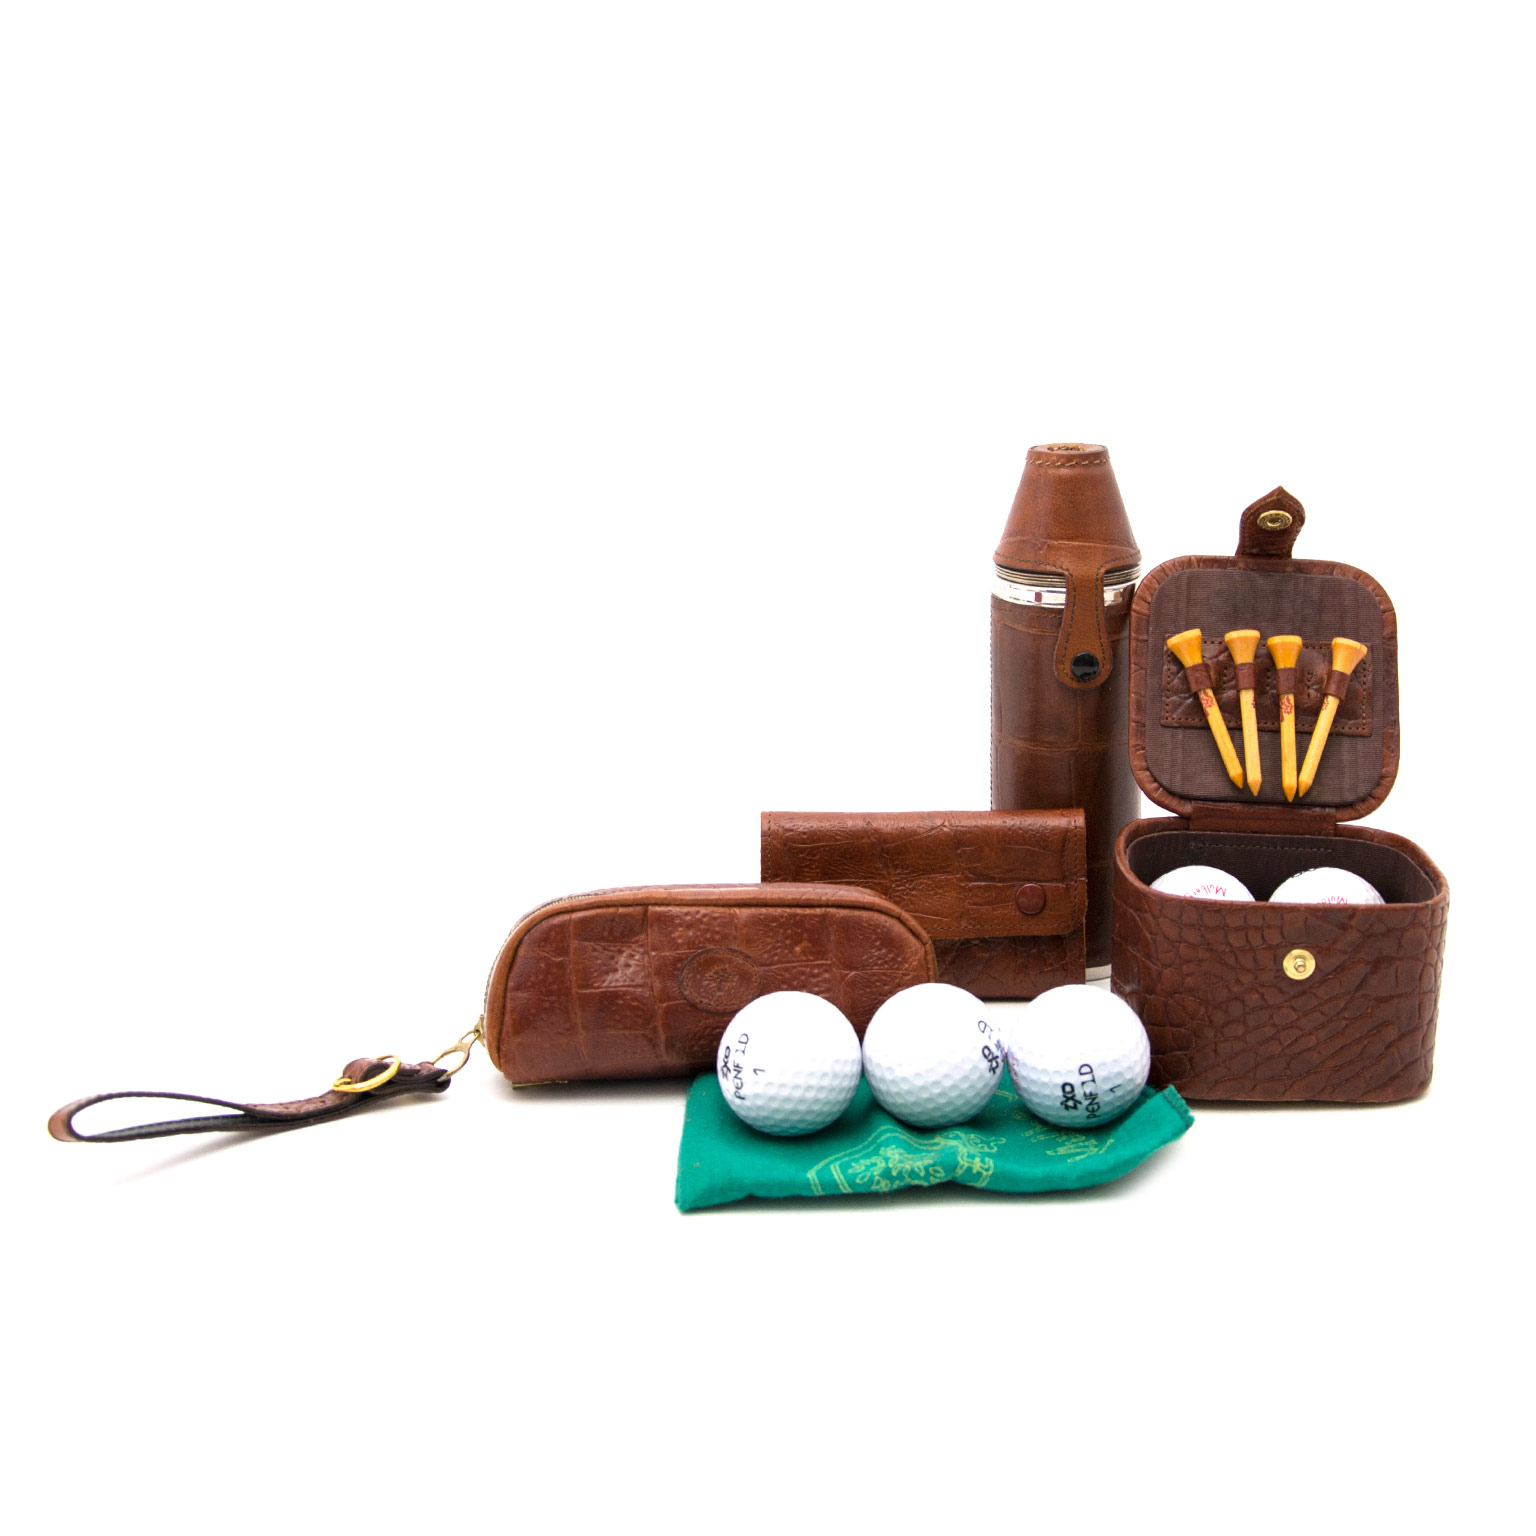 mulberry croco leather golfset now online at labellov.com for the best price